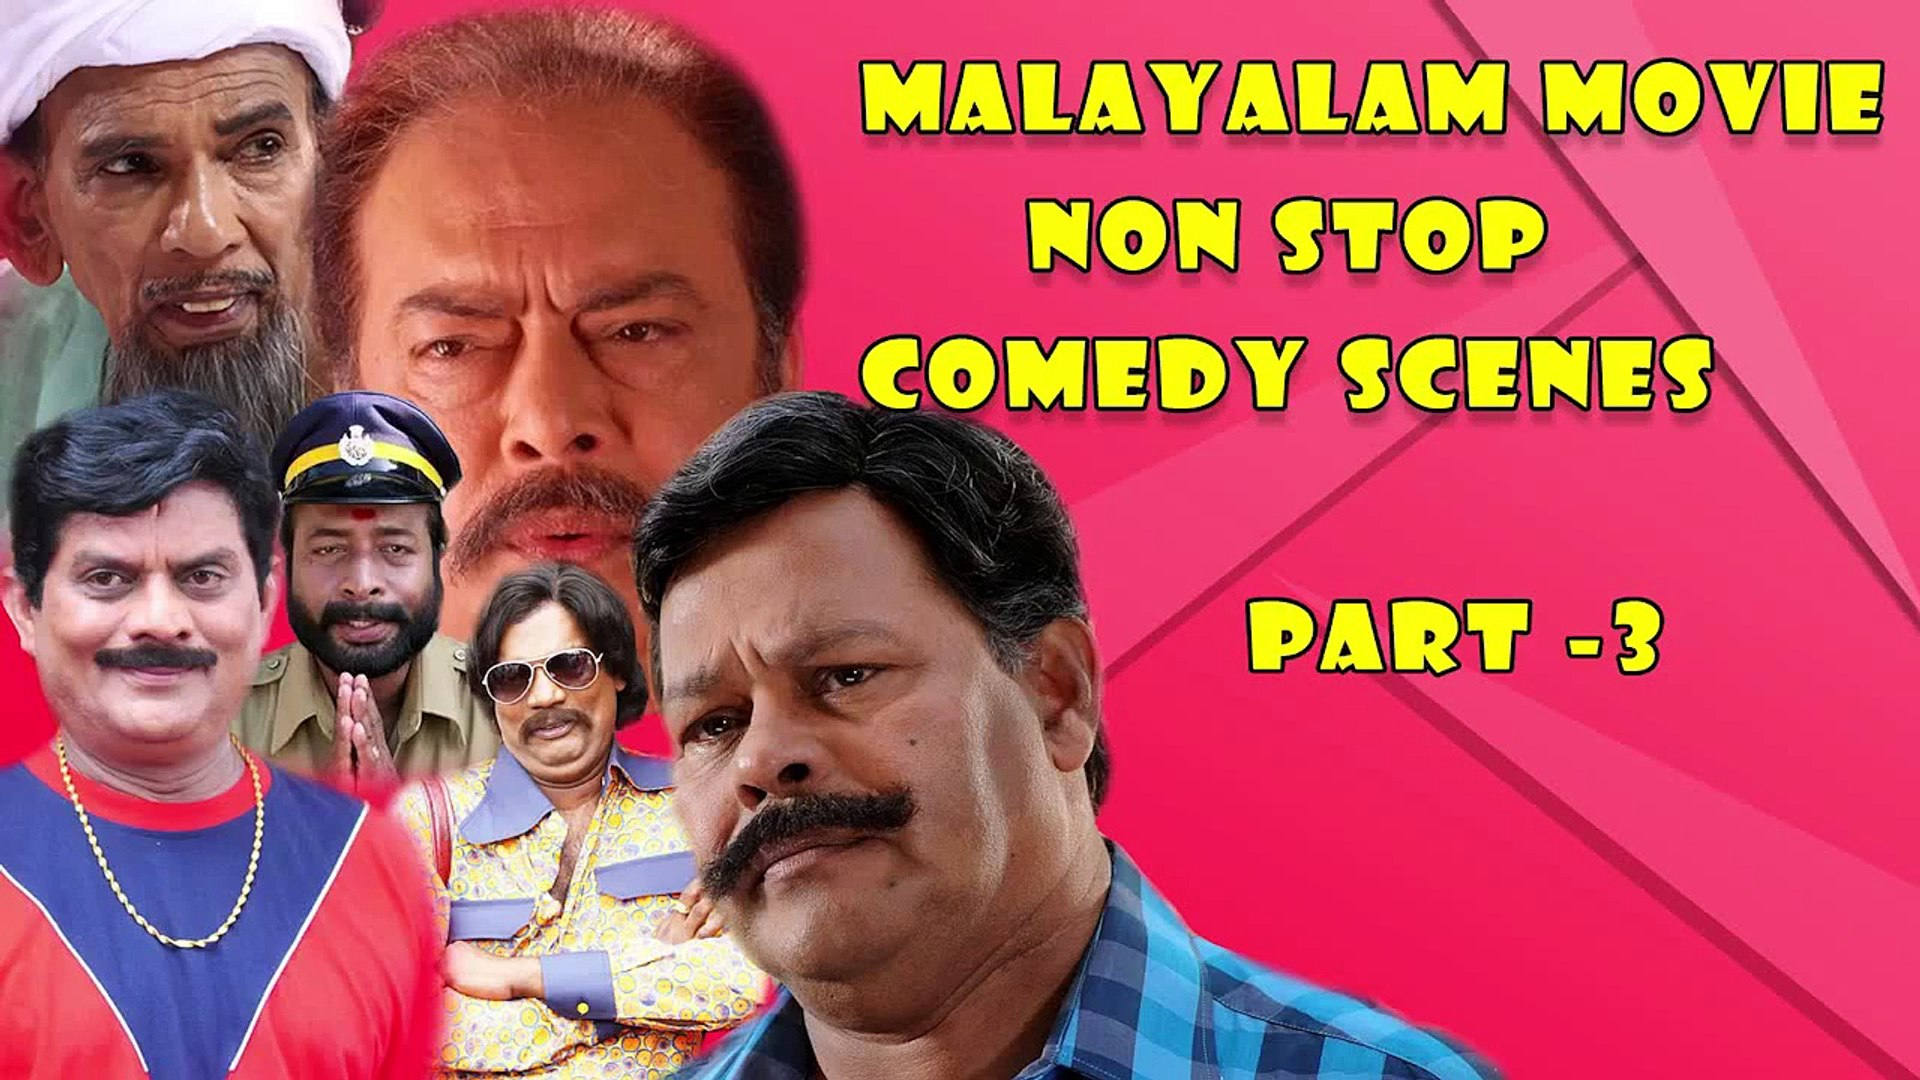 Malayalam Movie Non Stop Comedy Scenes 3 | Malayalam Comedy Scenes | Malayalam Movie Comed